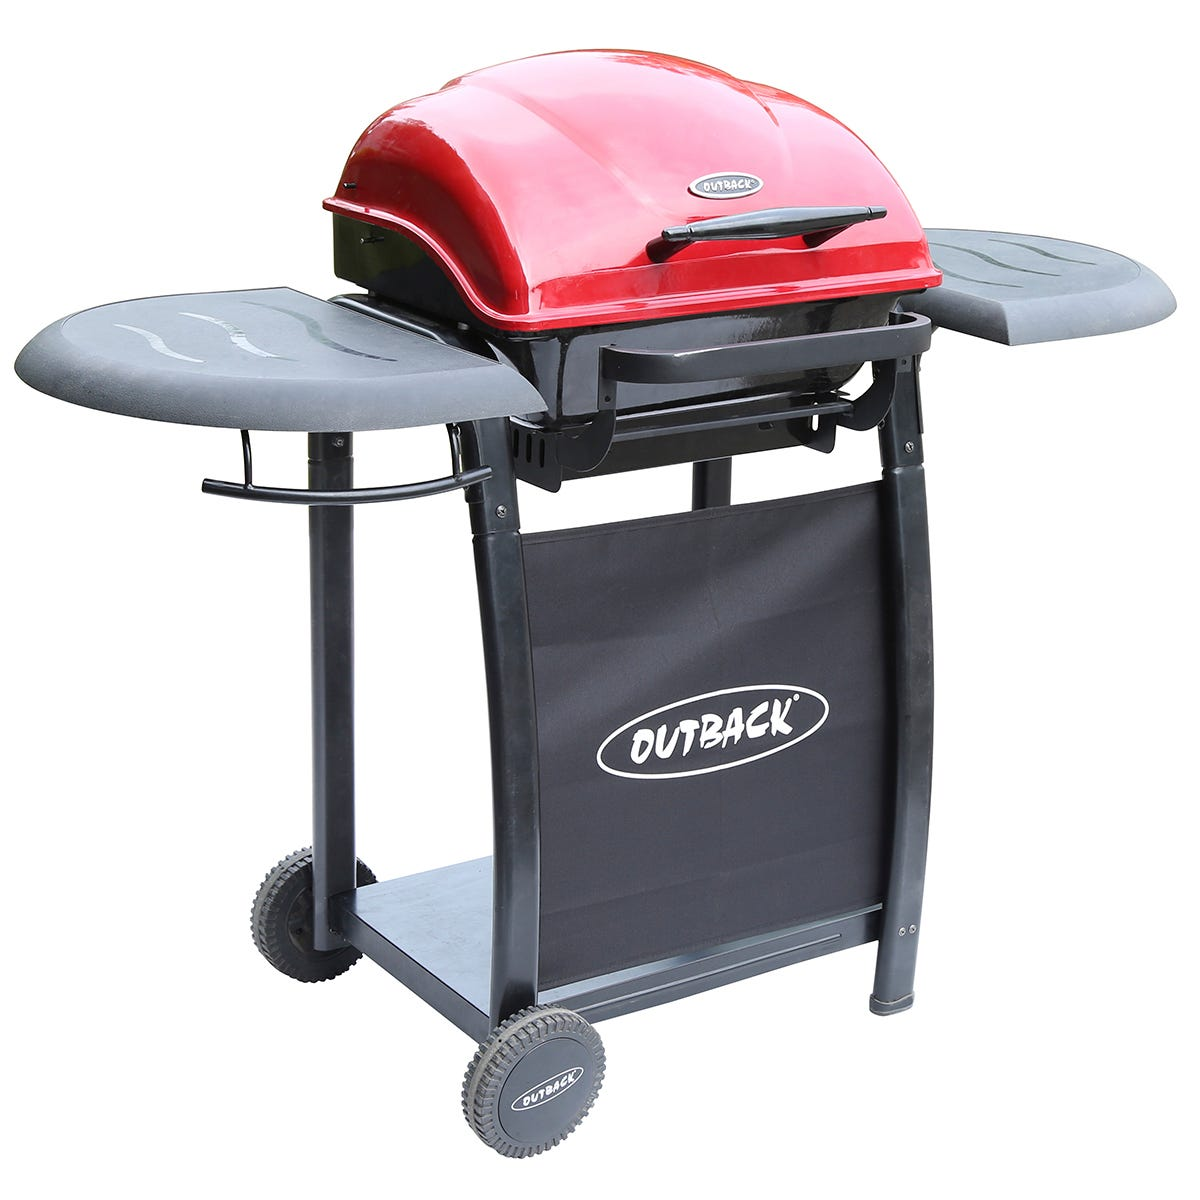 Outback Omega 210 Charcoal BBQ - Red